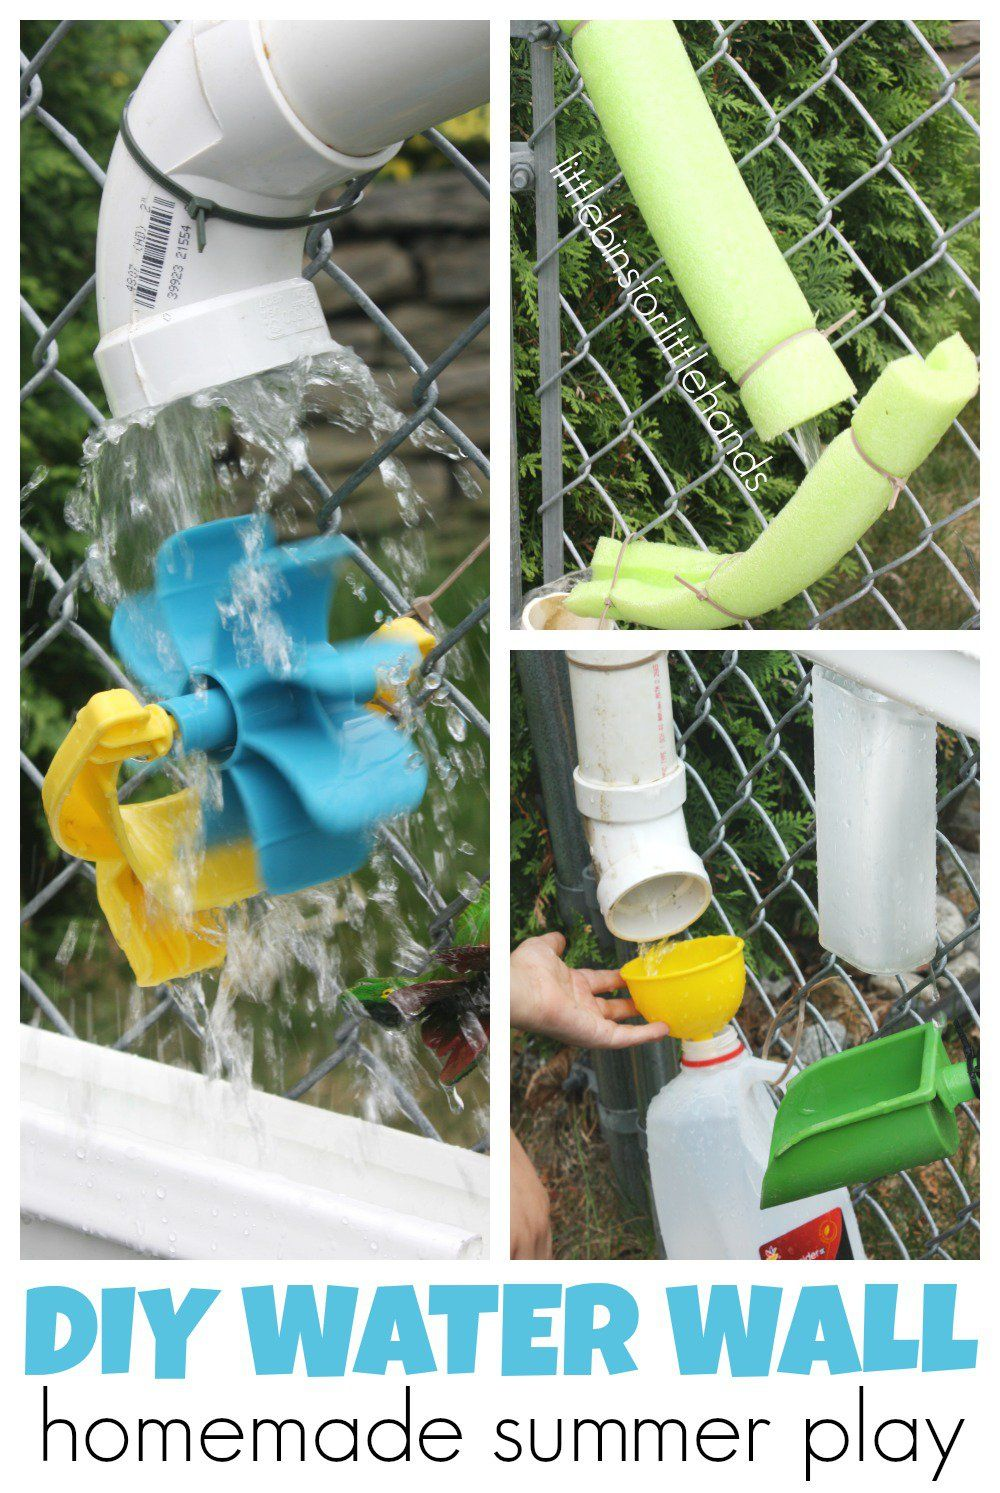 Diy patio water wall the interior frugalista diy patio water wall - Homemade Water Wall Summer Water Play For Kids Water Walls